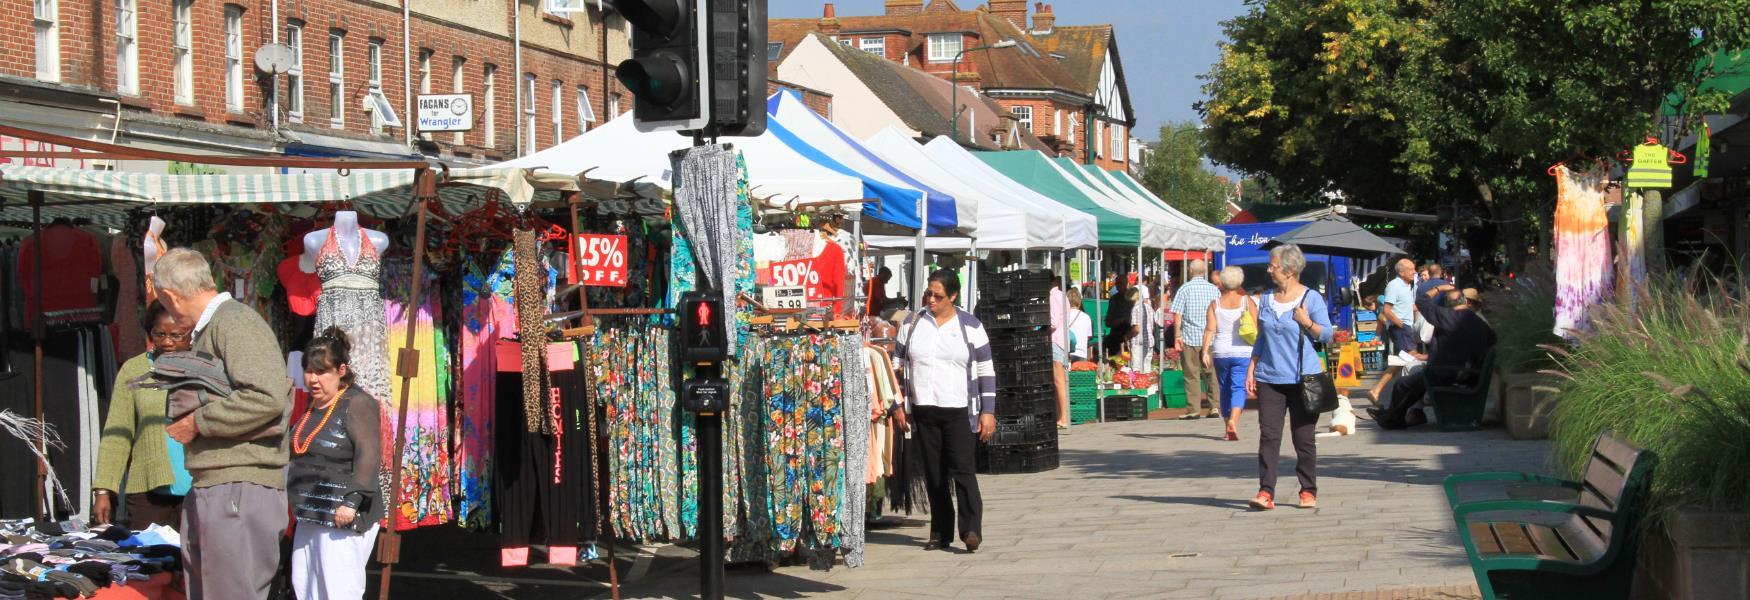 market event in new Milton high street in the new forest